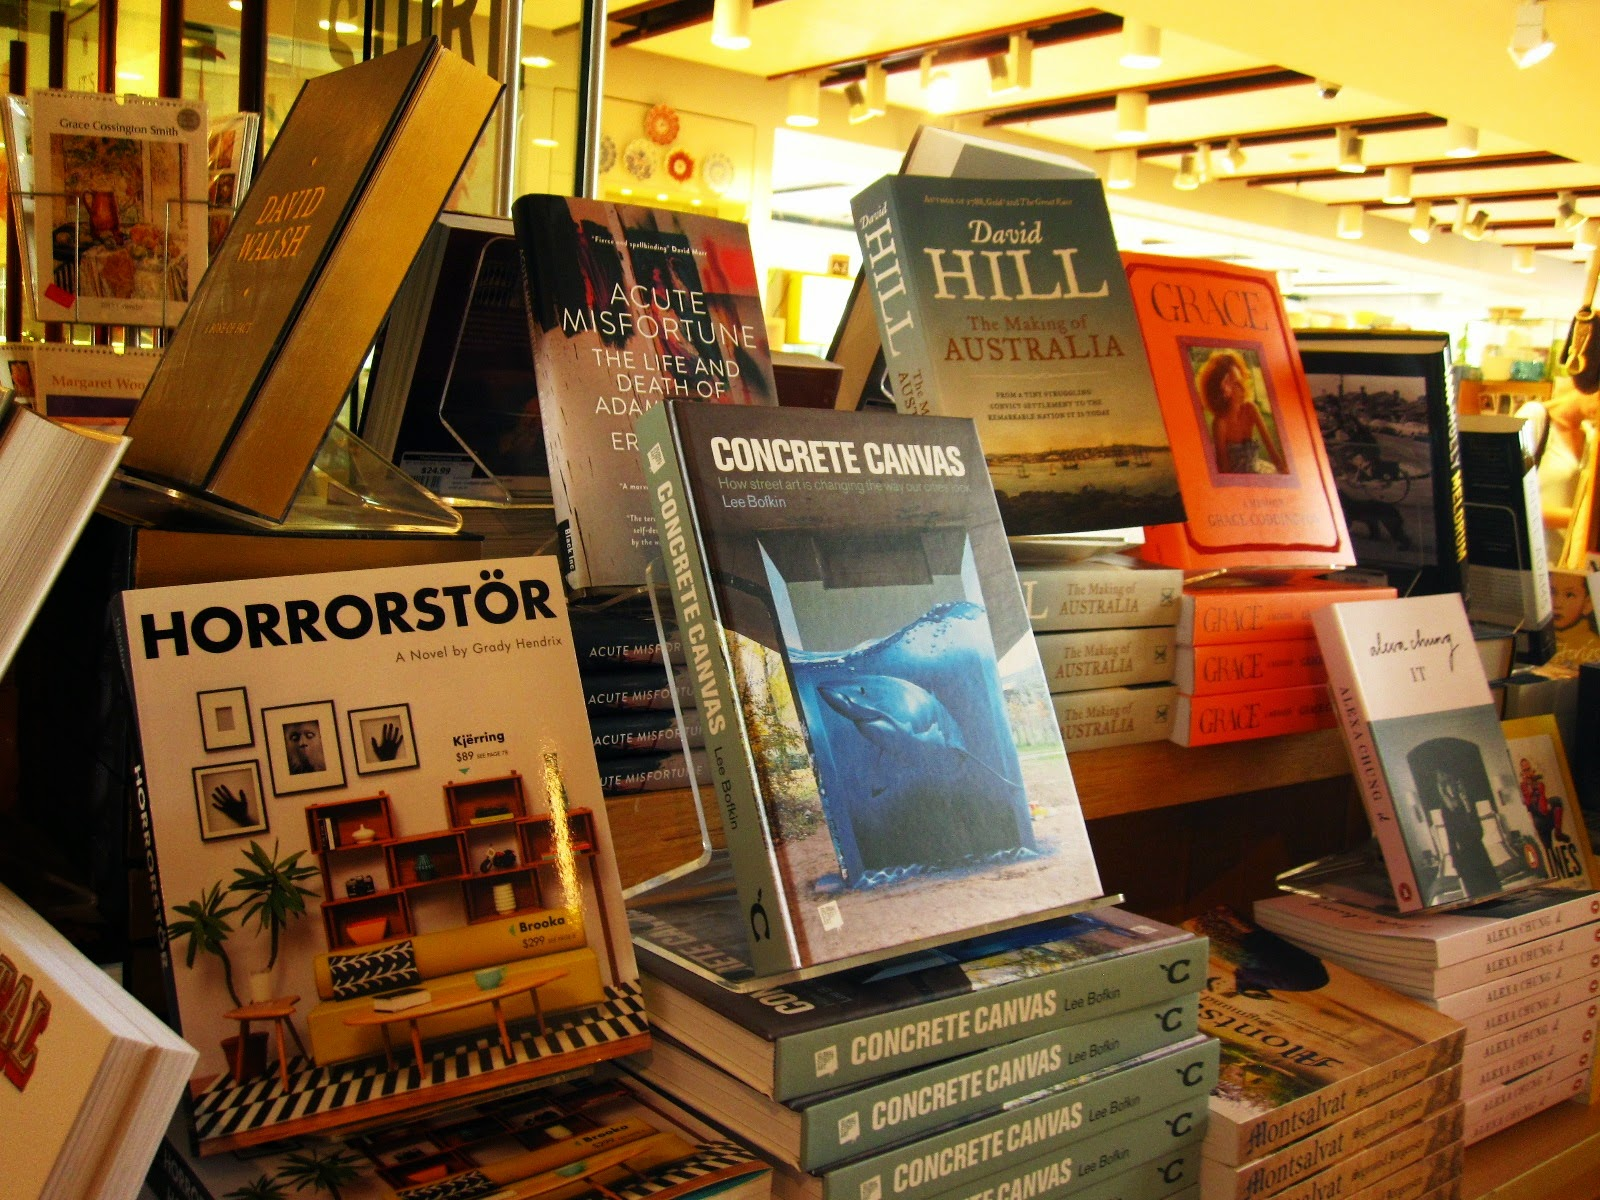 Copy of the book Horrorstör on display in a book shop.